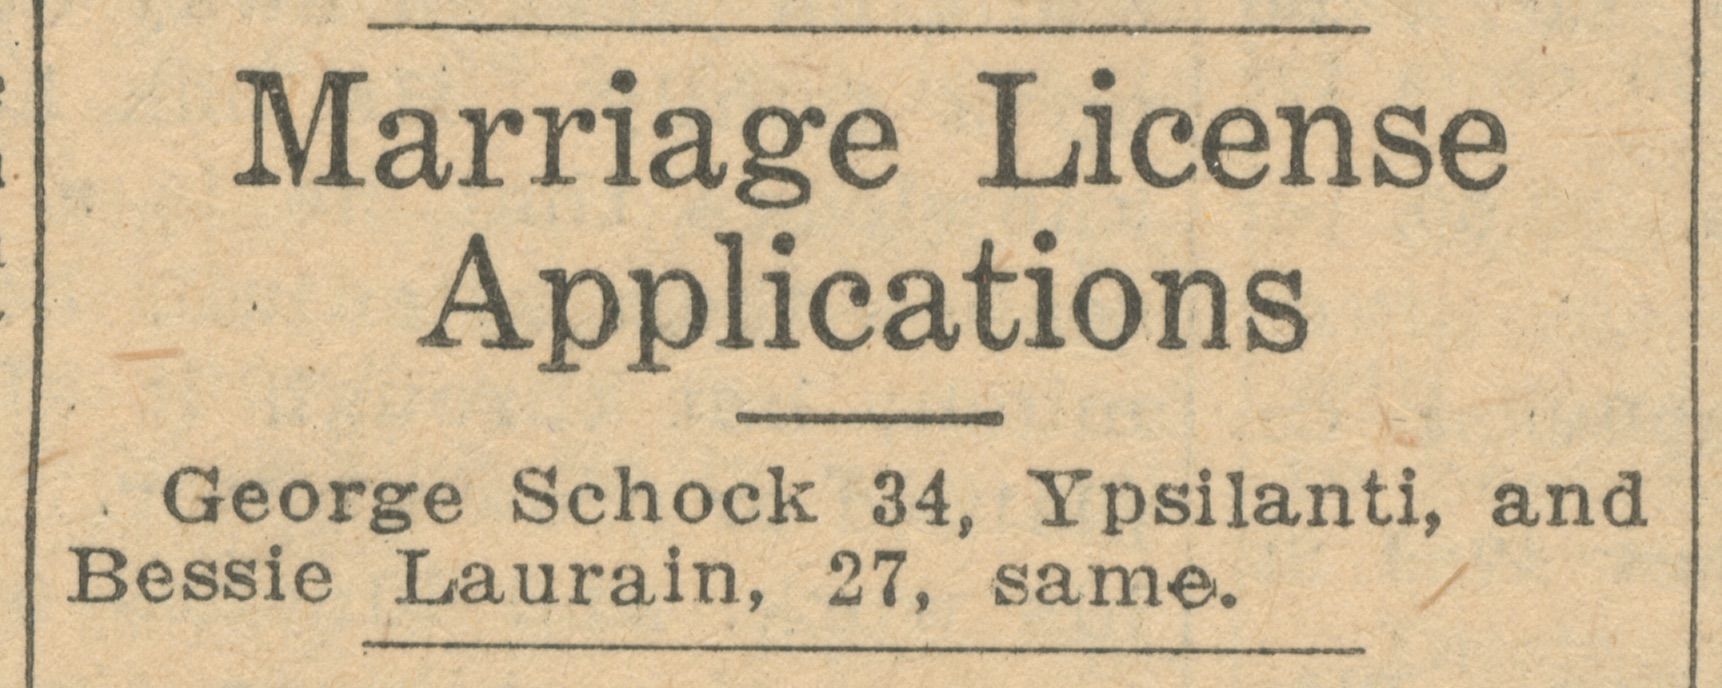 Marriage License Applications image